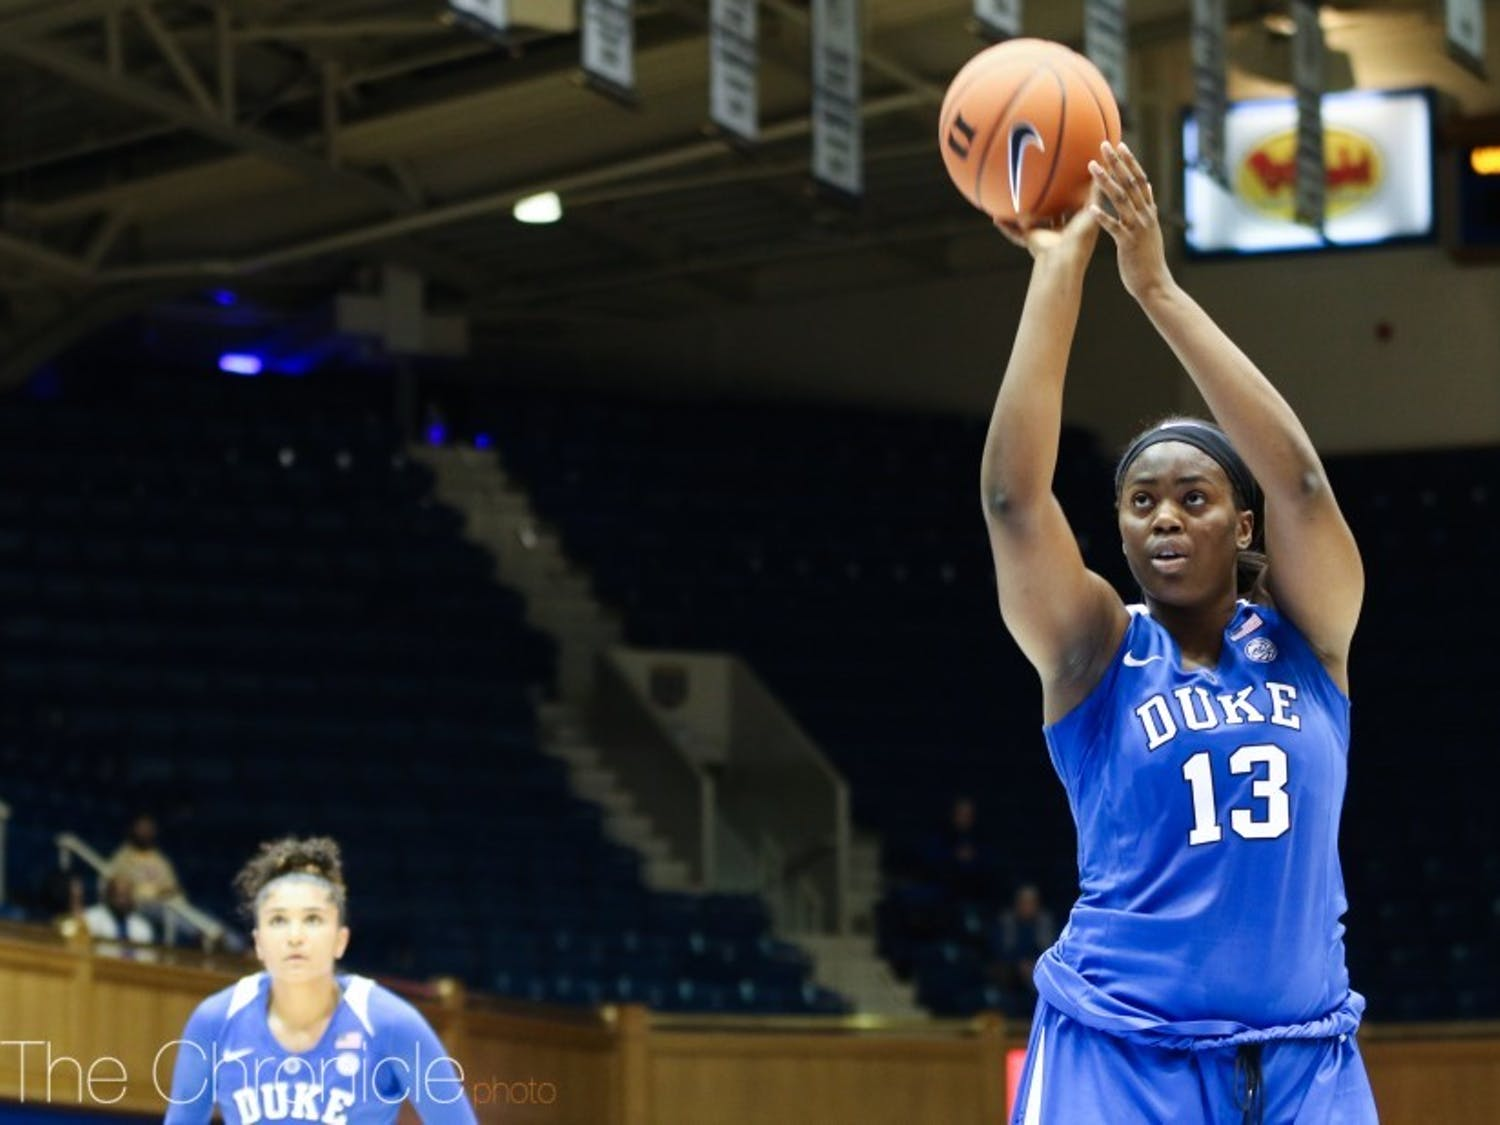 Uchenna Nwoke played in just eight games last season, totaling two points and three rebounds